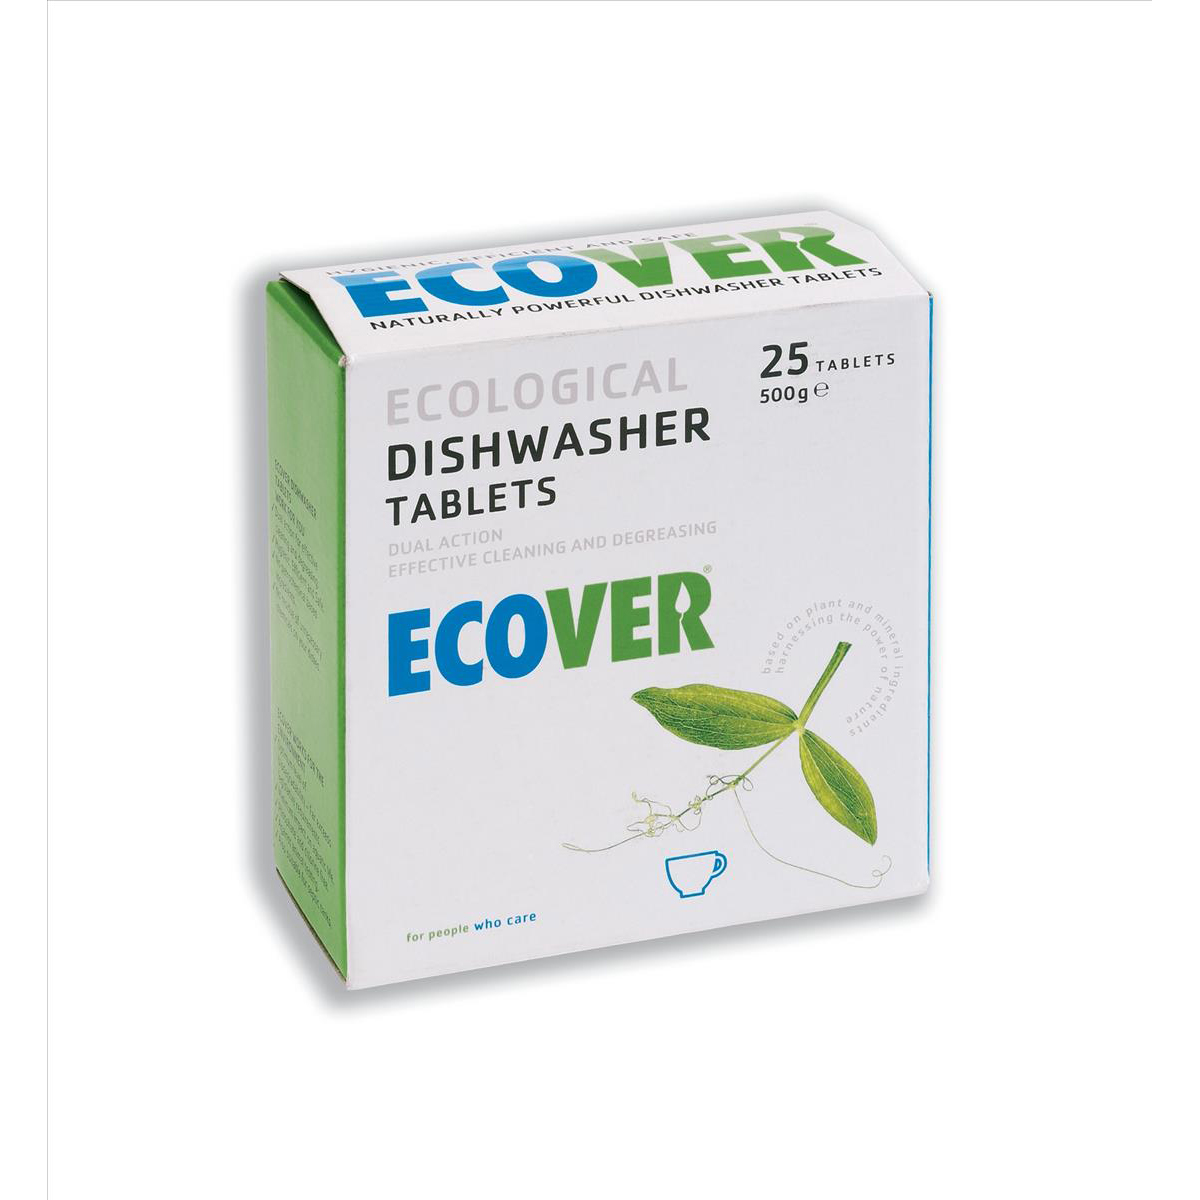 Dishwashing products Ecover Dishwasher Tablets Environmentally-friendly Ref 1002089 Pack 25